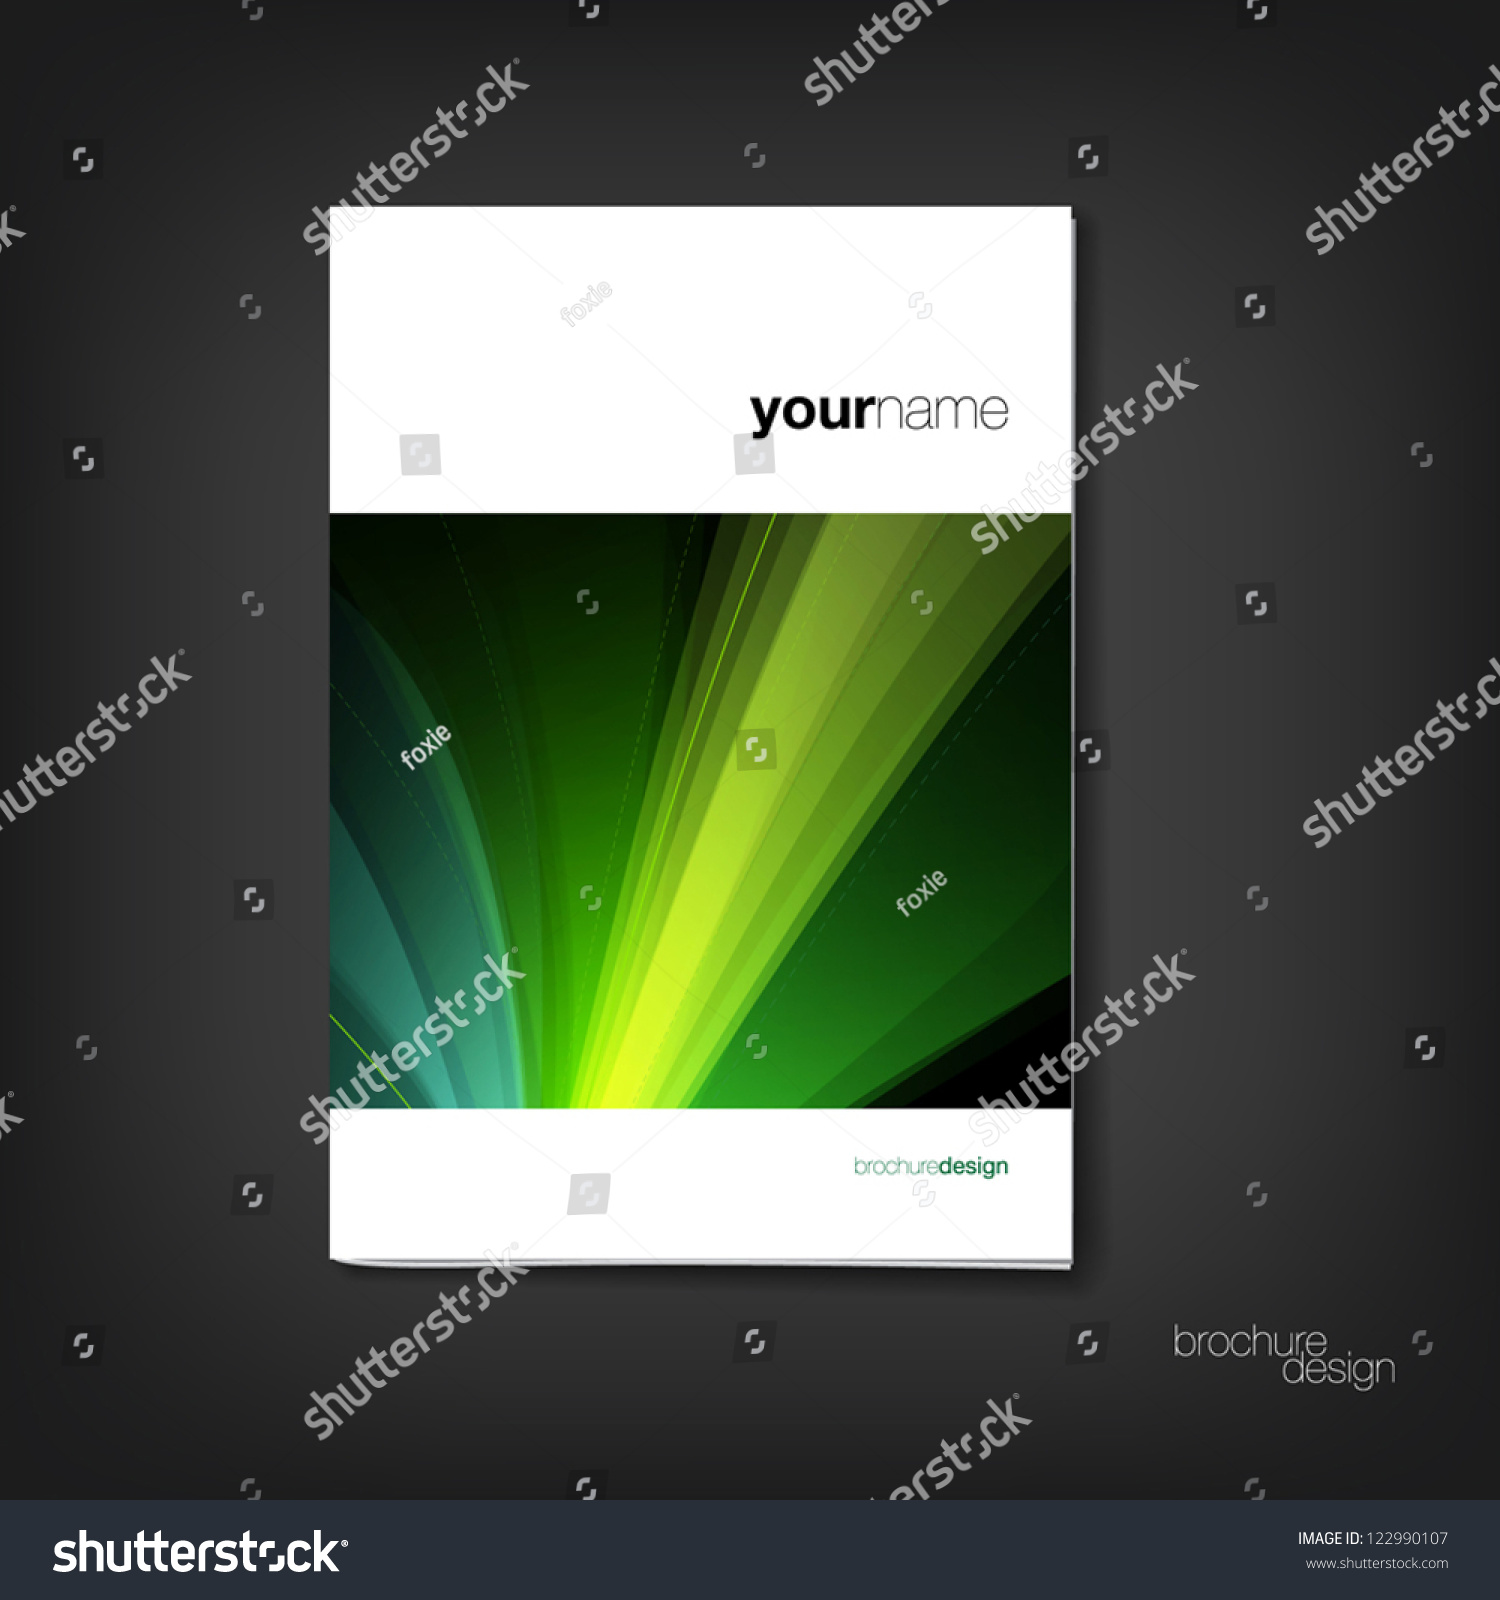 brochure booklet cover design template stock vector  brochure booklet cover design template